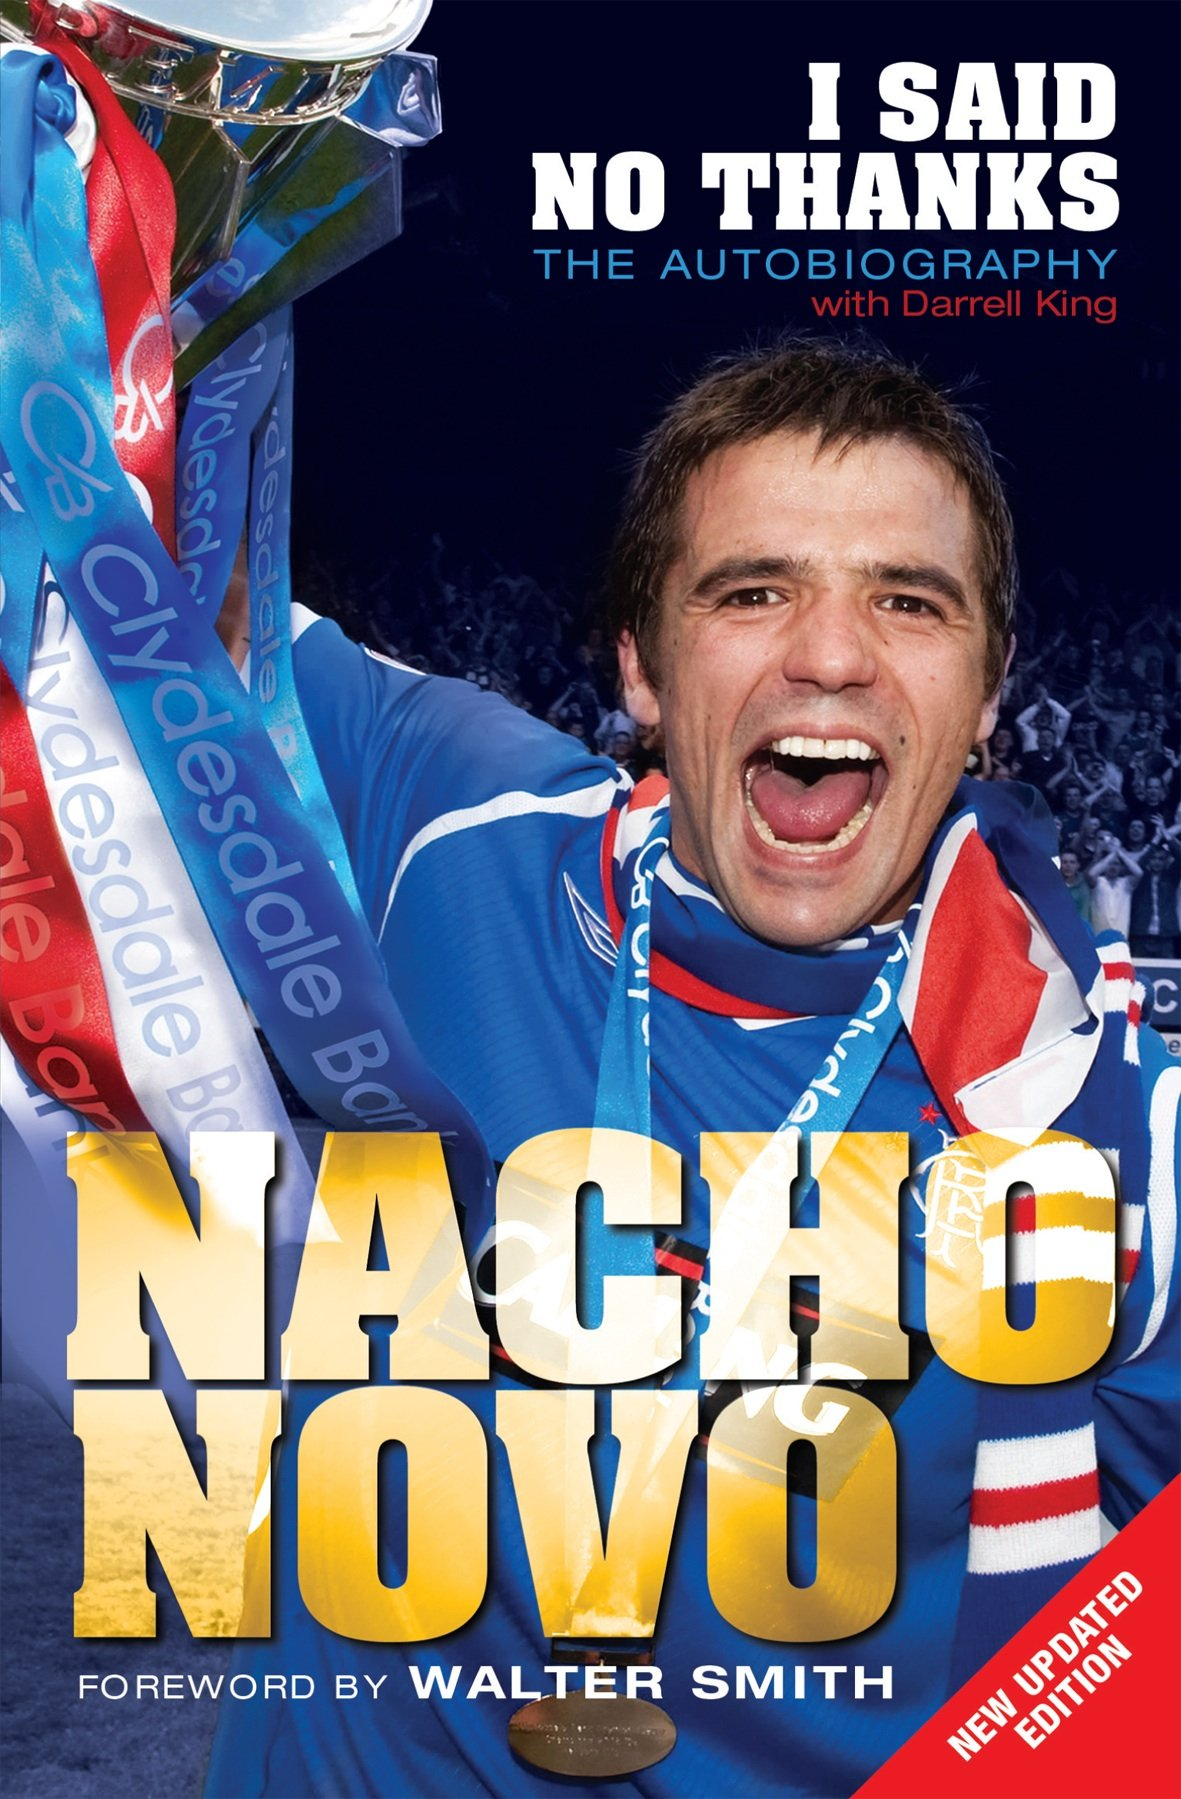 Image result for Nacho novo i said no